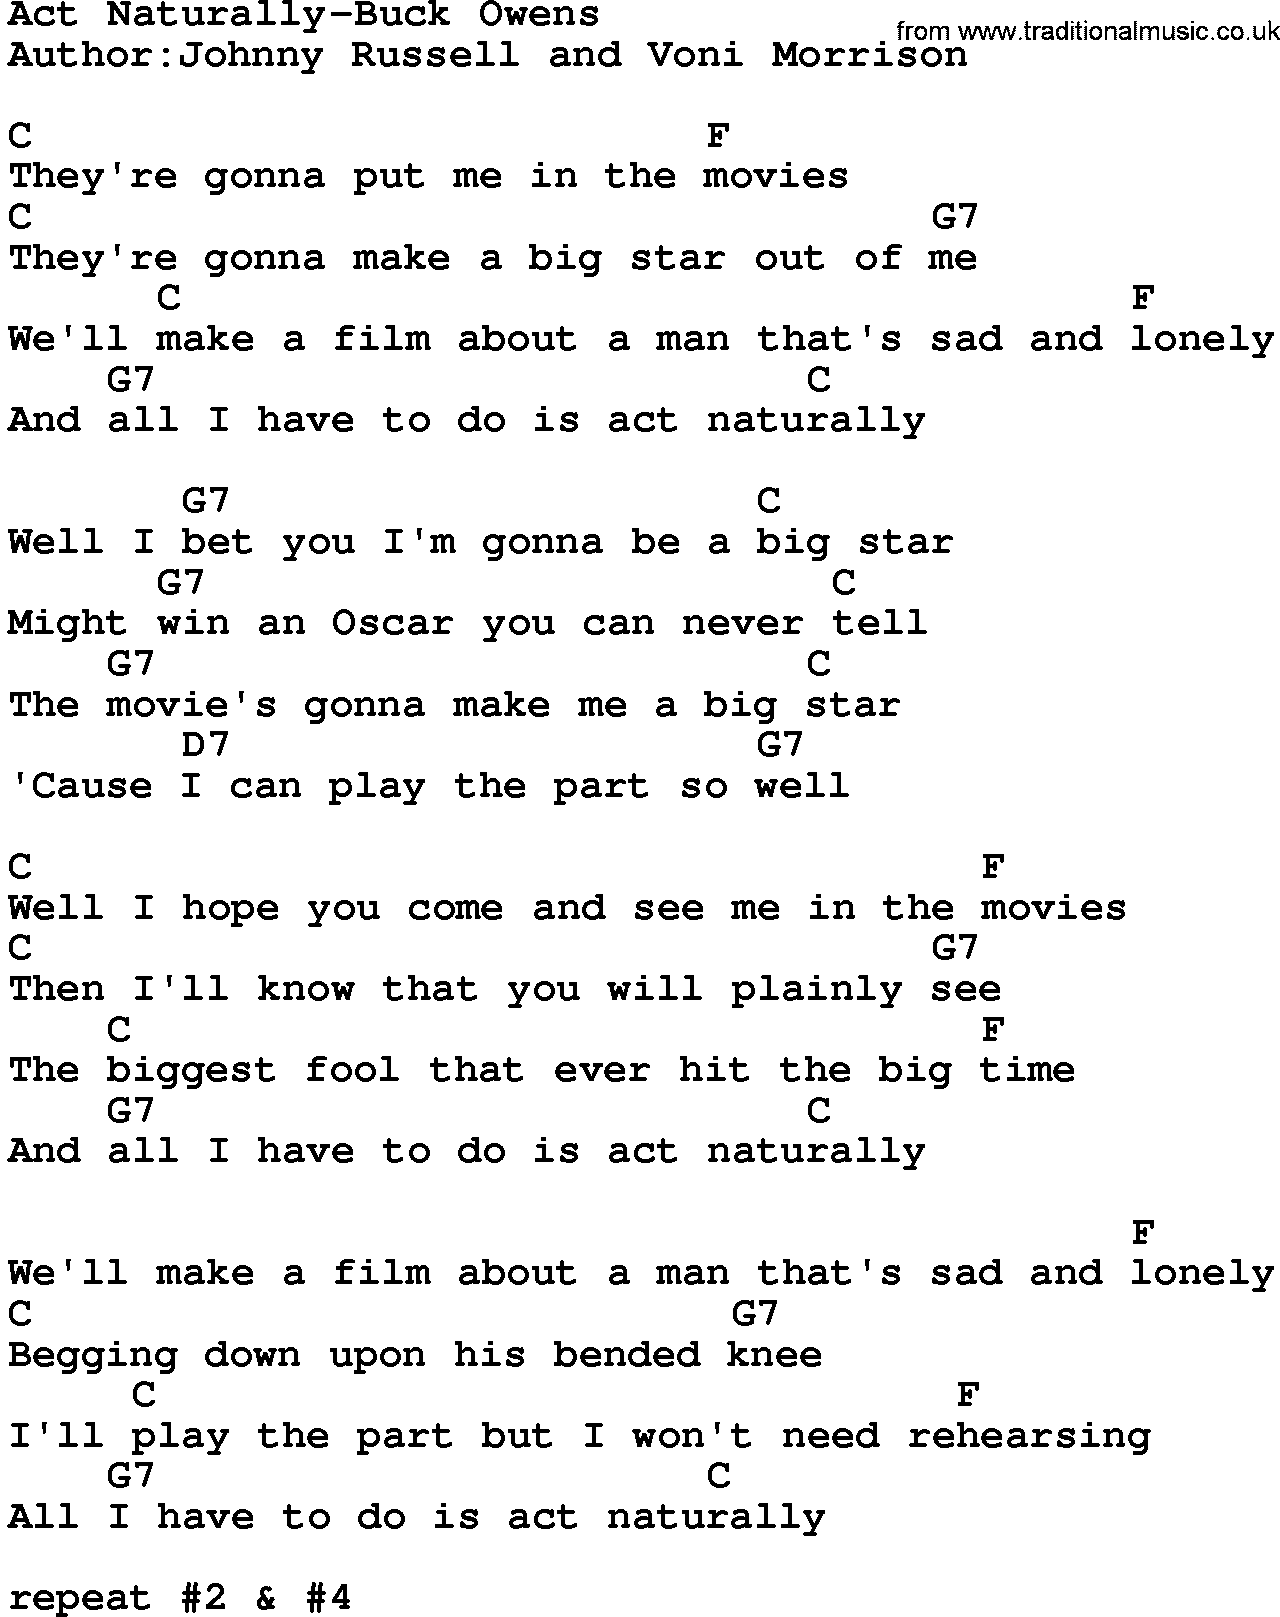 Buck owens song lyrics country music song act naturally buck country musicact naturally buck owens lyrics and chords hexwebz Gallery